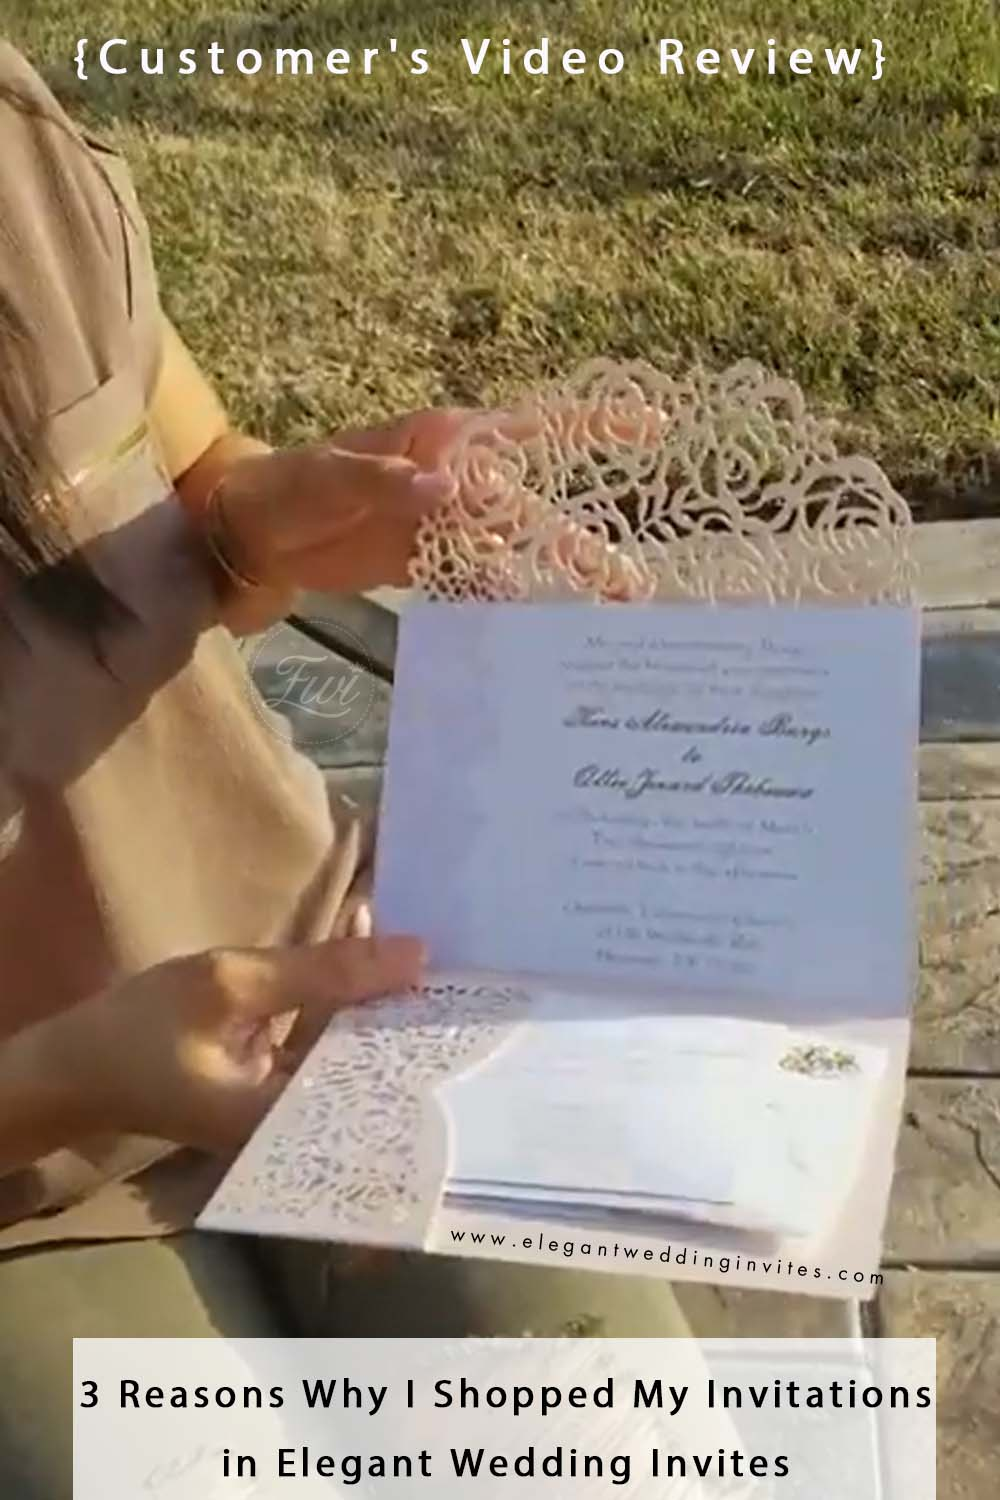 customer Video Review 3 Reasons Why I Shopped My Invitations in Elegant Wedding Invites